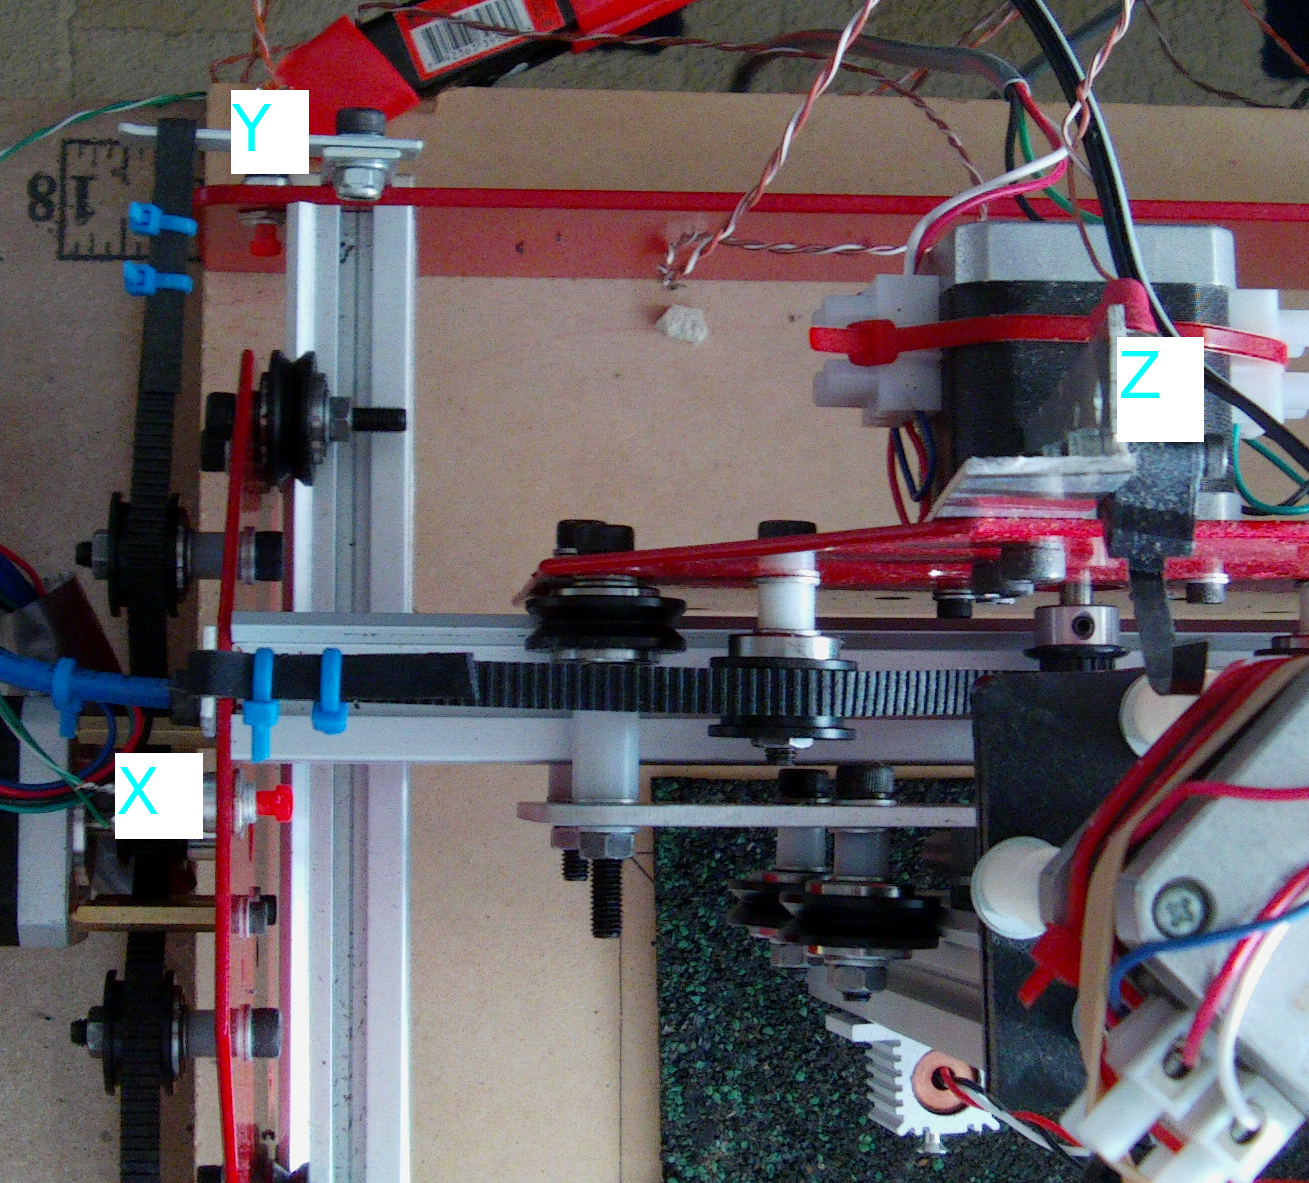 Grbl 0 9g settings for my Shapeoko | Alpharesearch